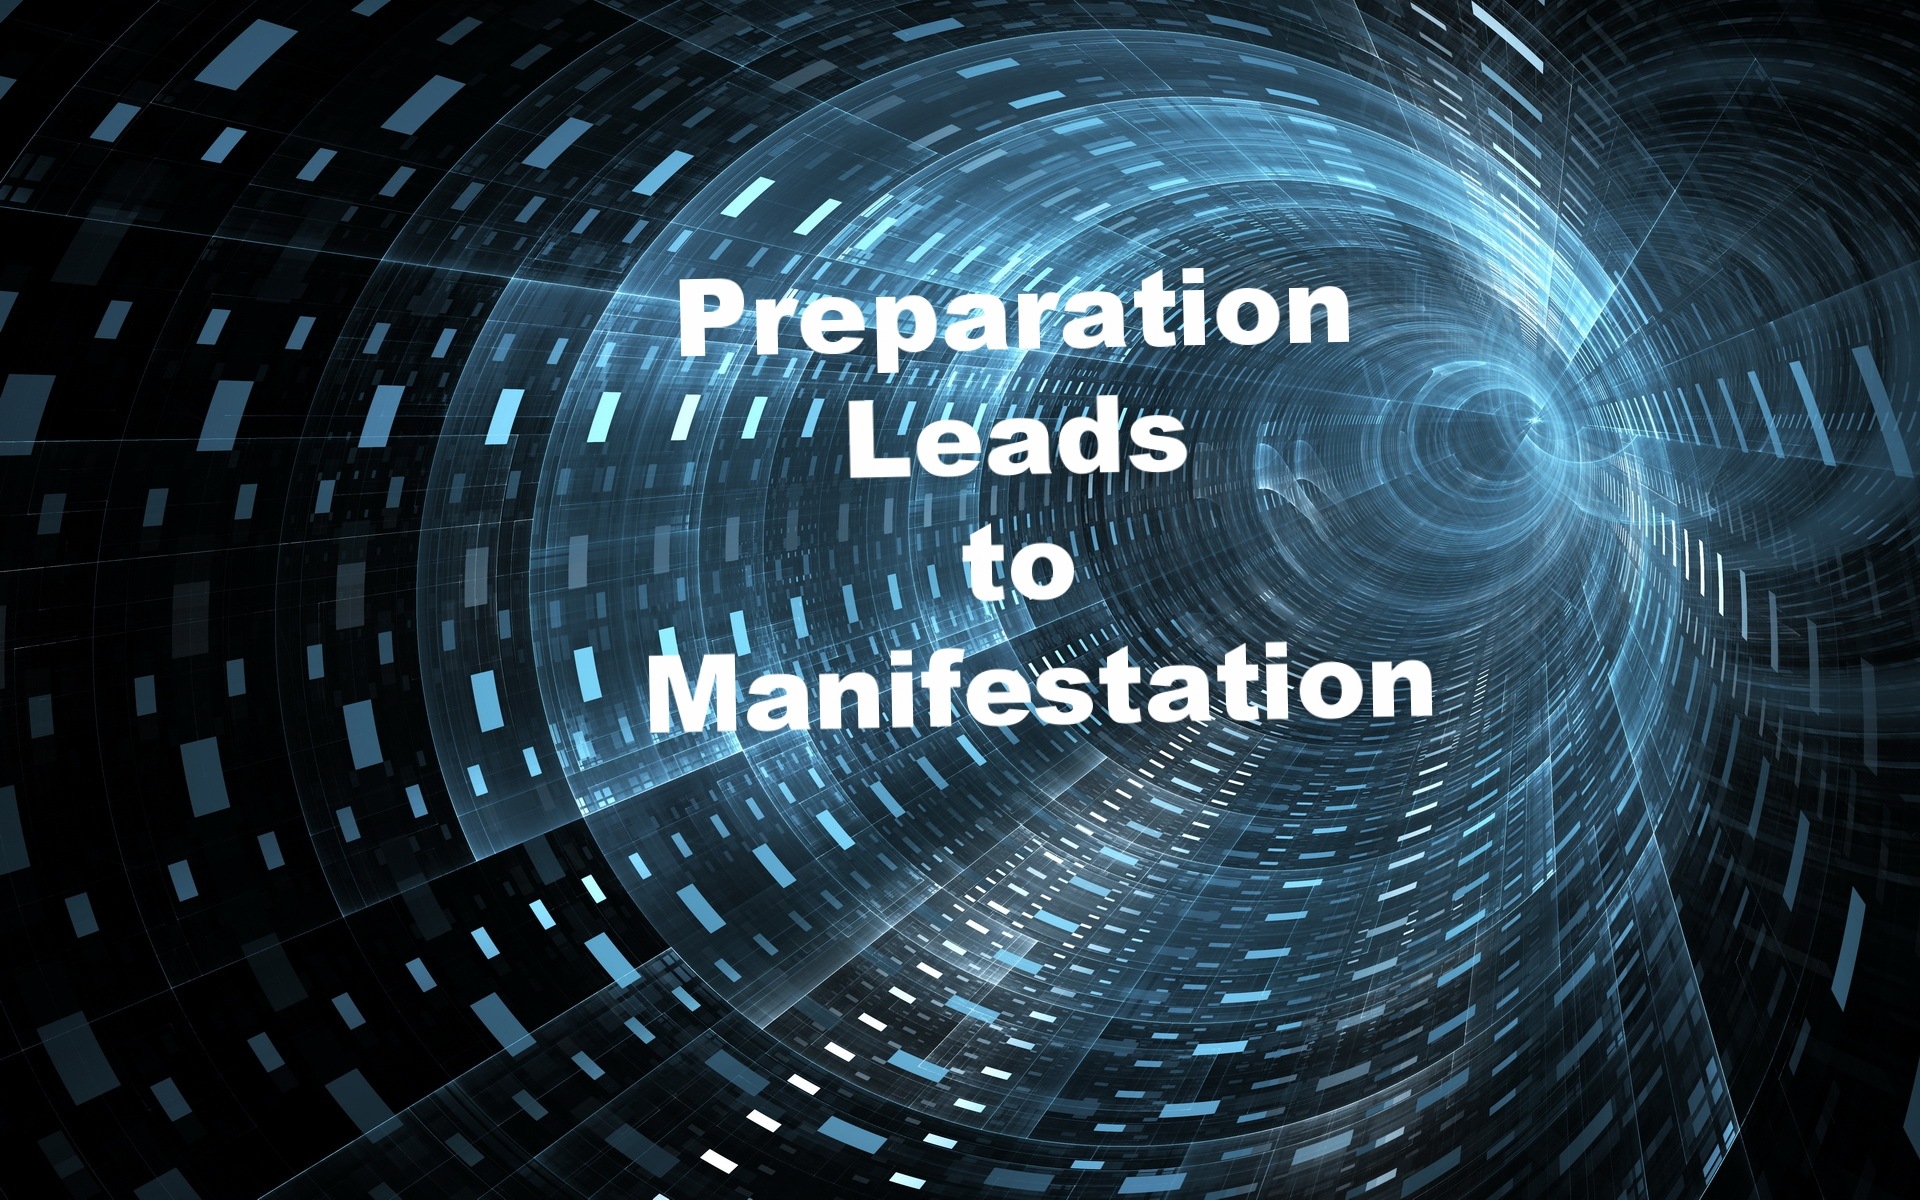 Preparation Leads to Manifestation 12/10/17